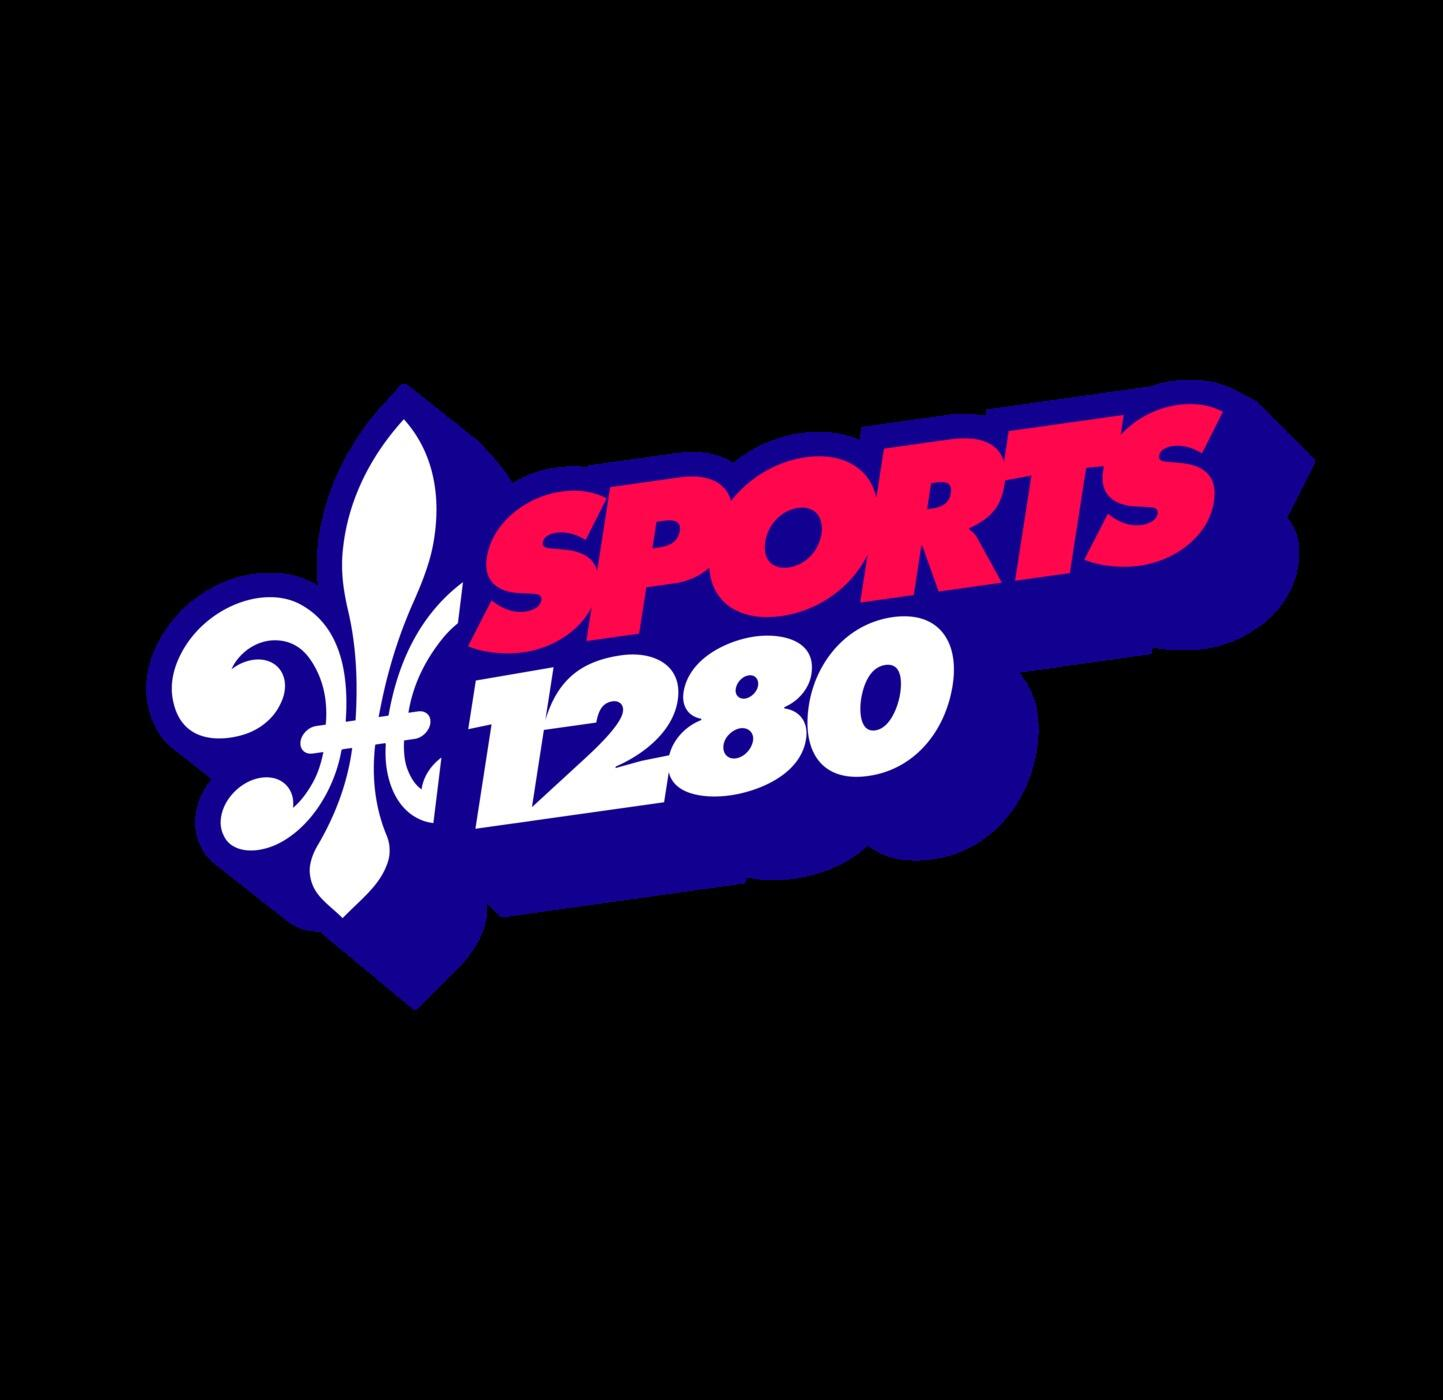 Listen to the Inside New Orleans With Eric Asher Episode - LSU Enters SEC Play this Weekend & Dr. Doom is in Full Doom Mode for the Saints. Inside New Orleans on iHeartRadio | iHeartRadio